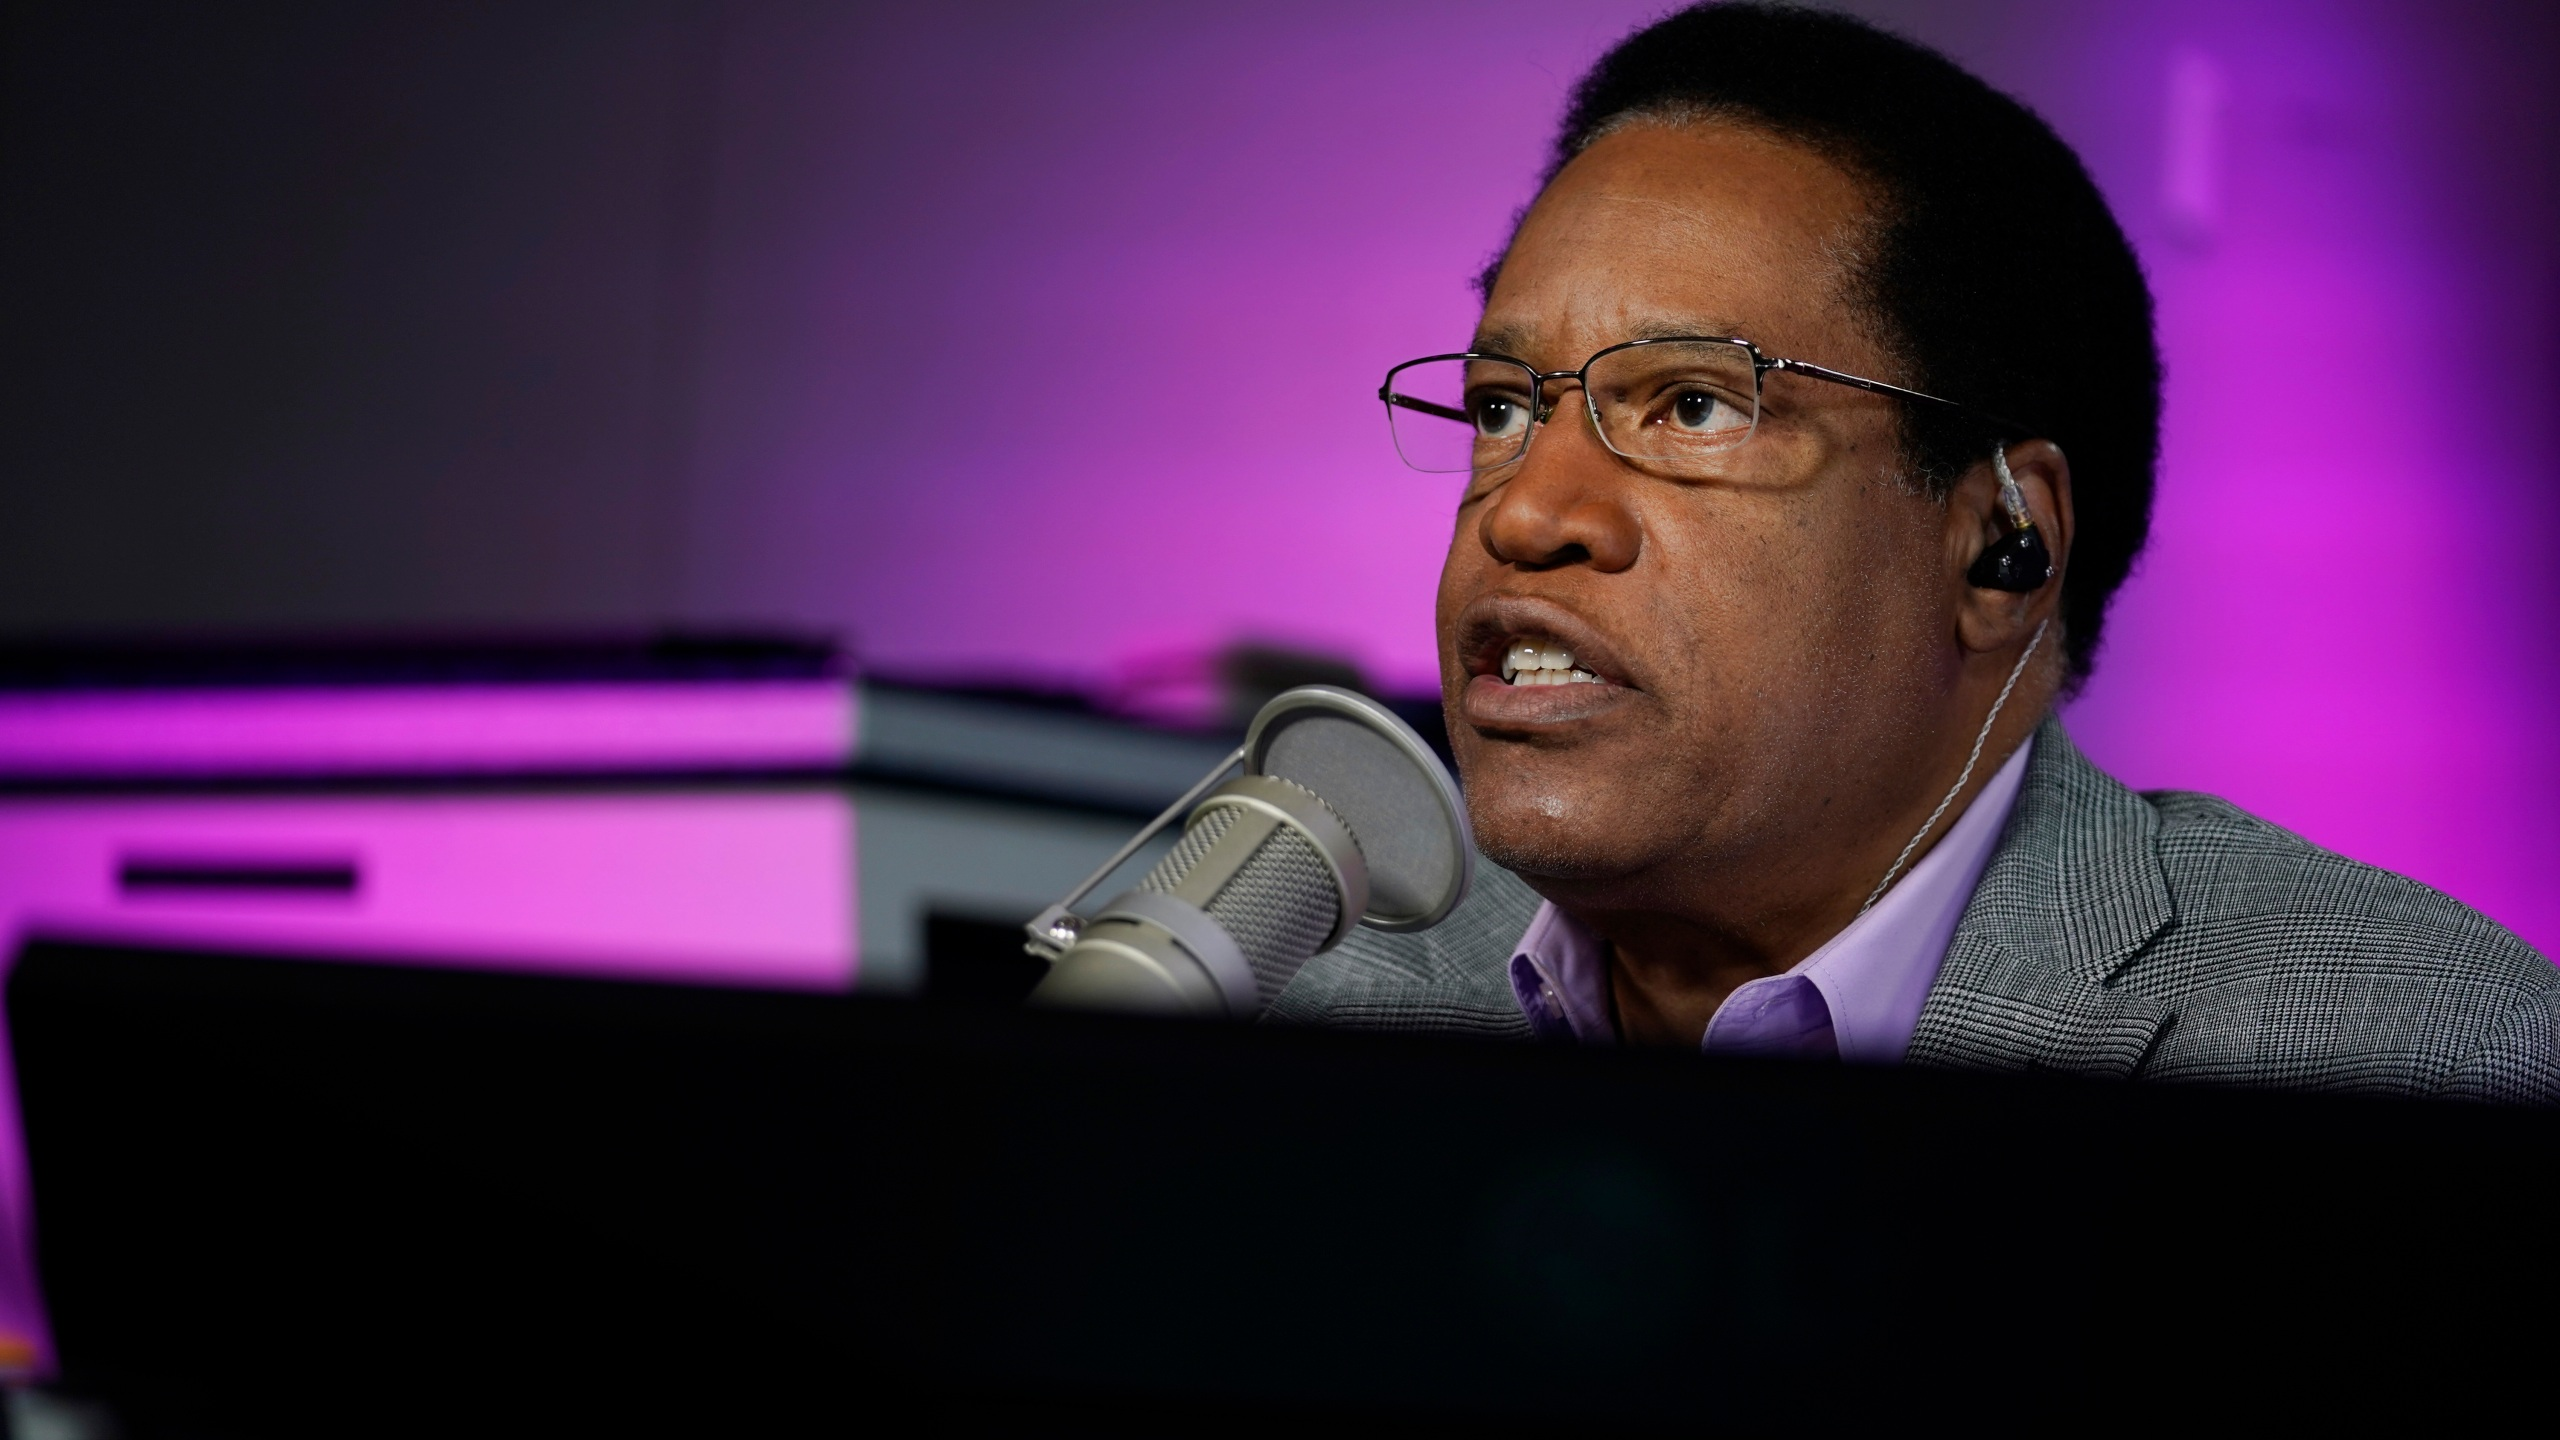 In this July 12, 2021 file photo radio talk show host Larry Elder speaks during his show, in Burbank, Calif. Alexandra Datig, Elder's former fiancee said Thursday, Aug. 19 that Elder, a candidate for governor in the Sept. 14 recall election, once displayed a gun to her during a heated argument in 2015. Elder said he never brandished a gun at anyone. (AP Photo/Marcio Jose Sanchez, File)